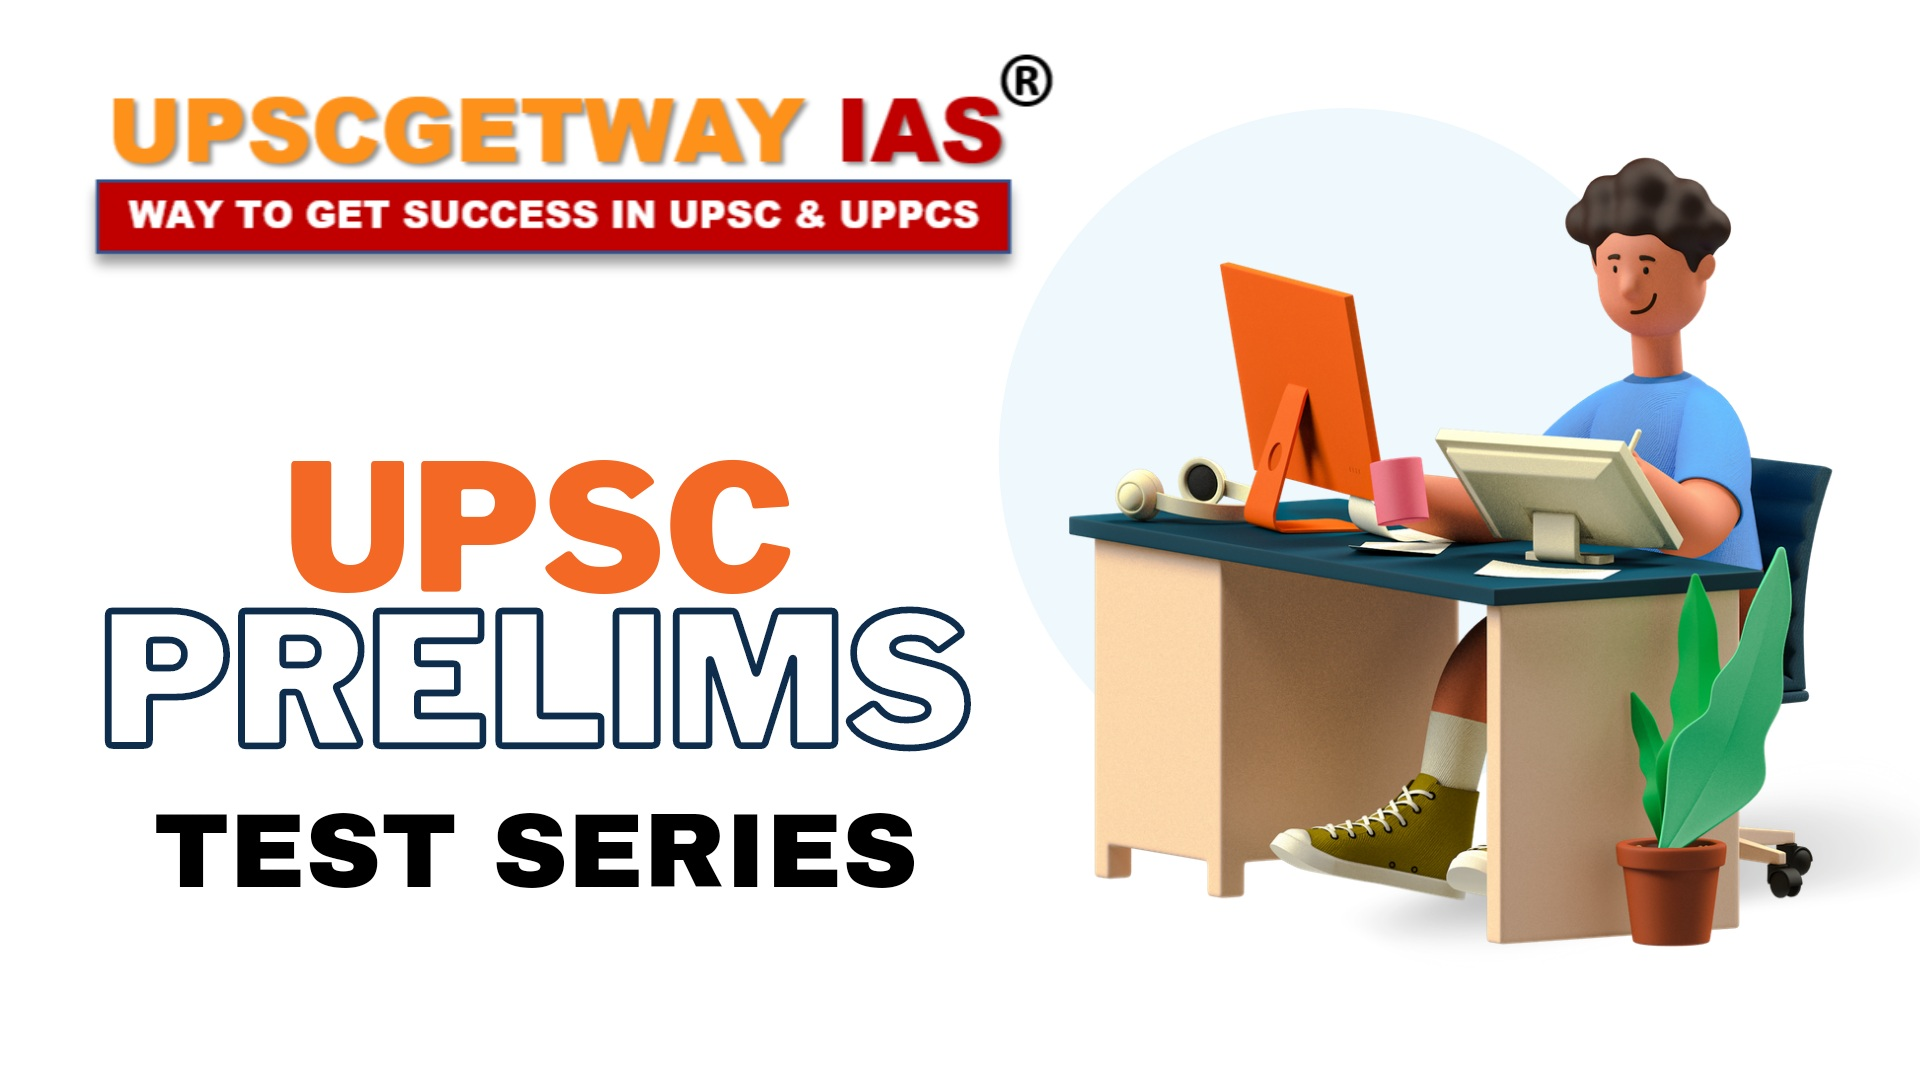 UPSC Prelims Test Series and Library in Lucknow